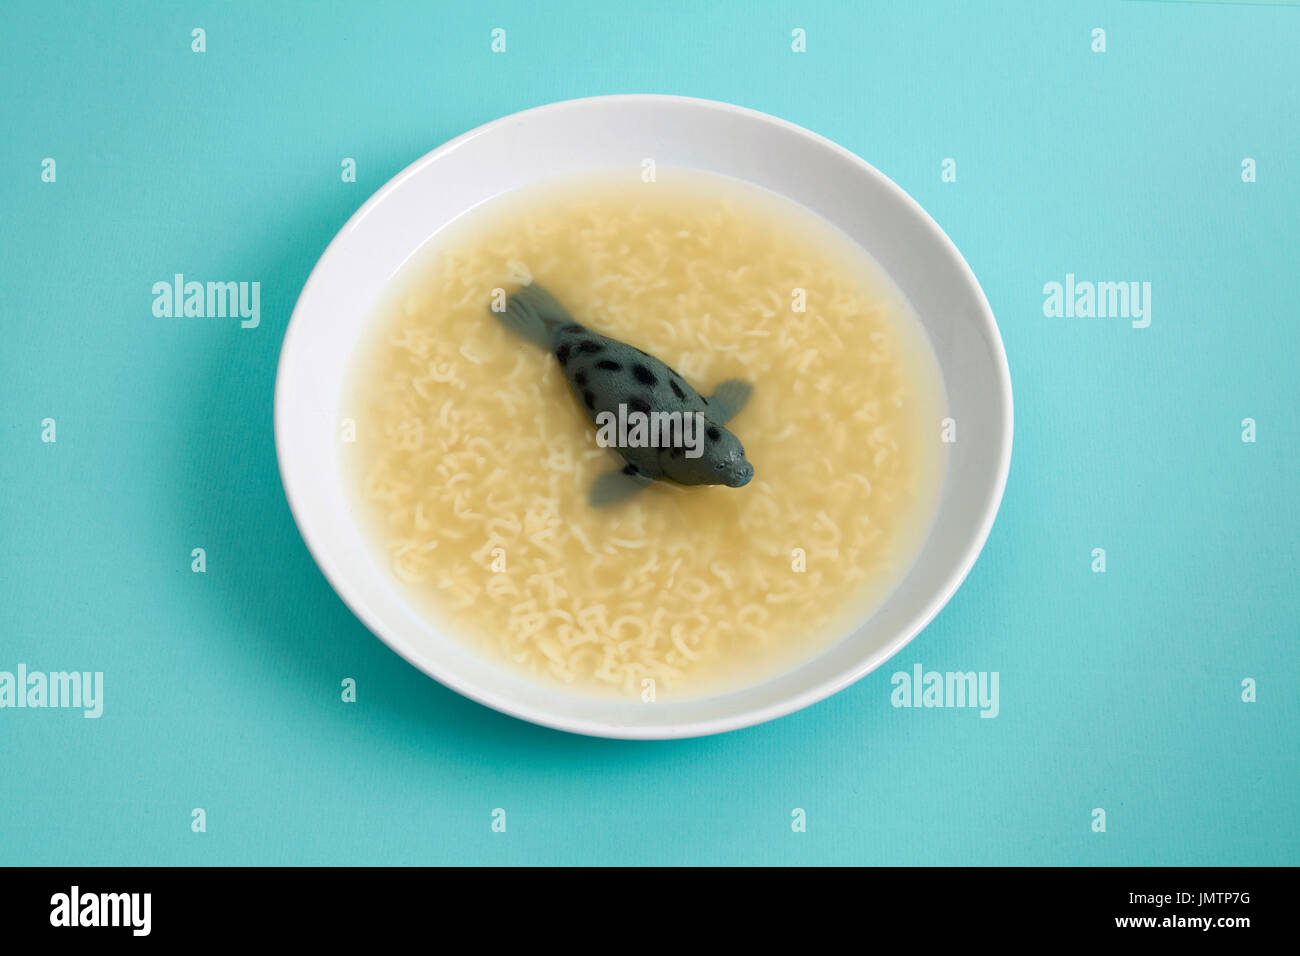 a sea lion animal swiming in a broth with Alphabet pasta. Quirky, funny and minimal color still life photography - Stock Image